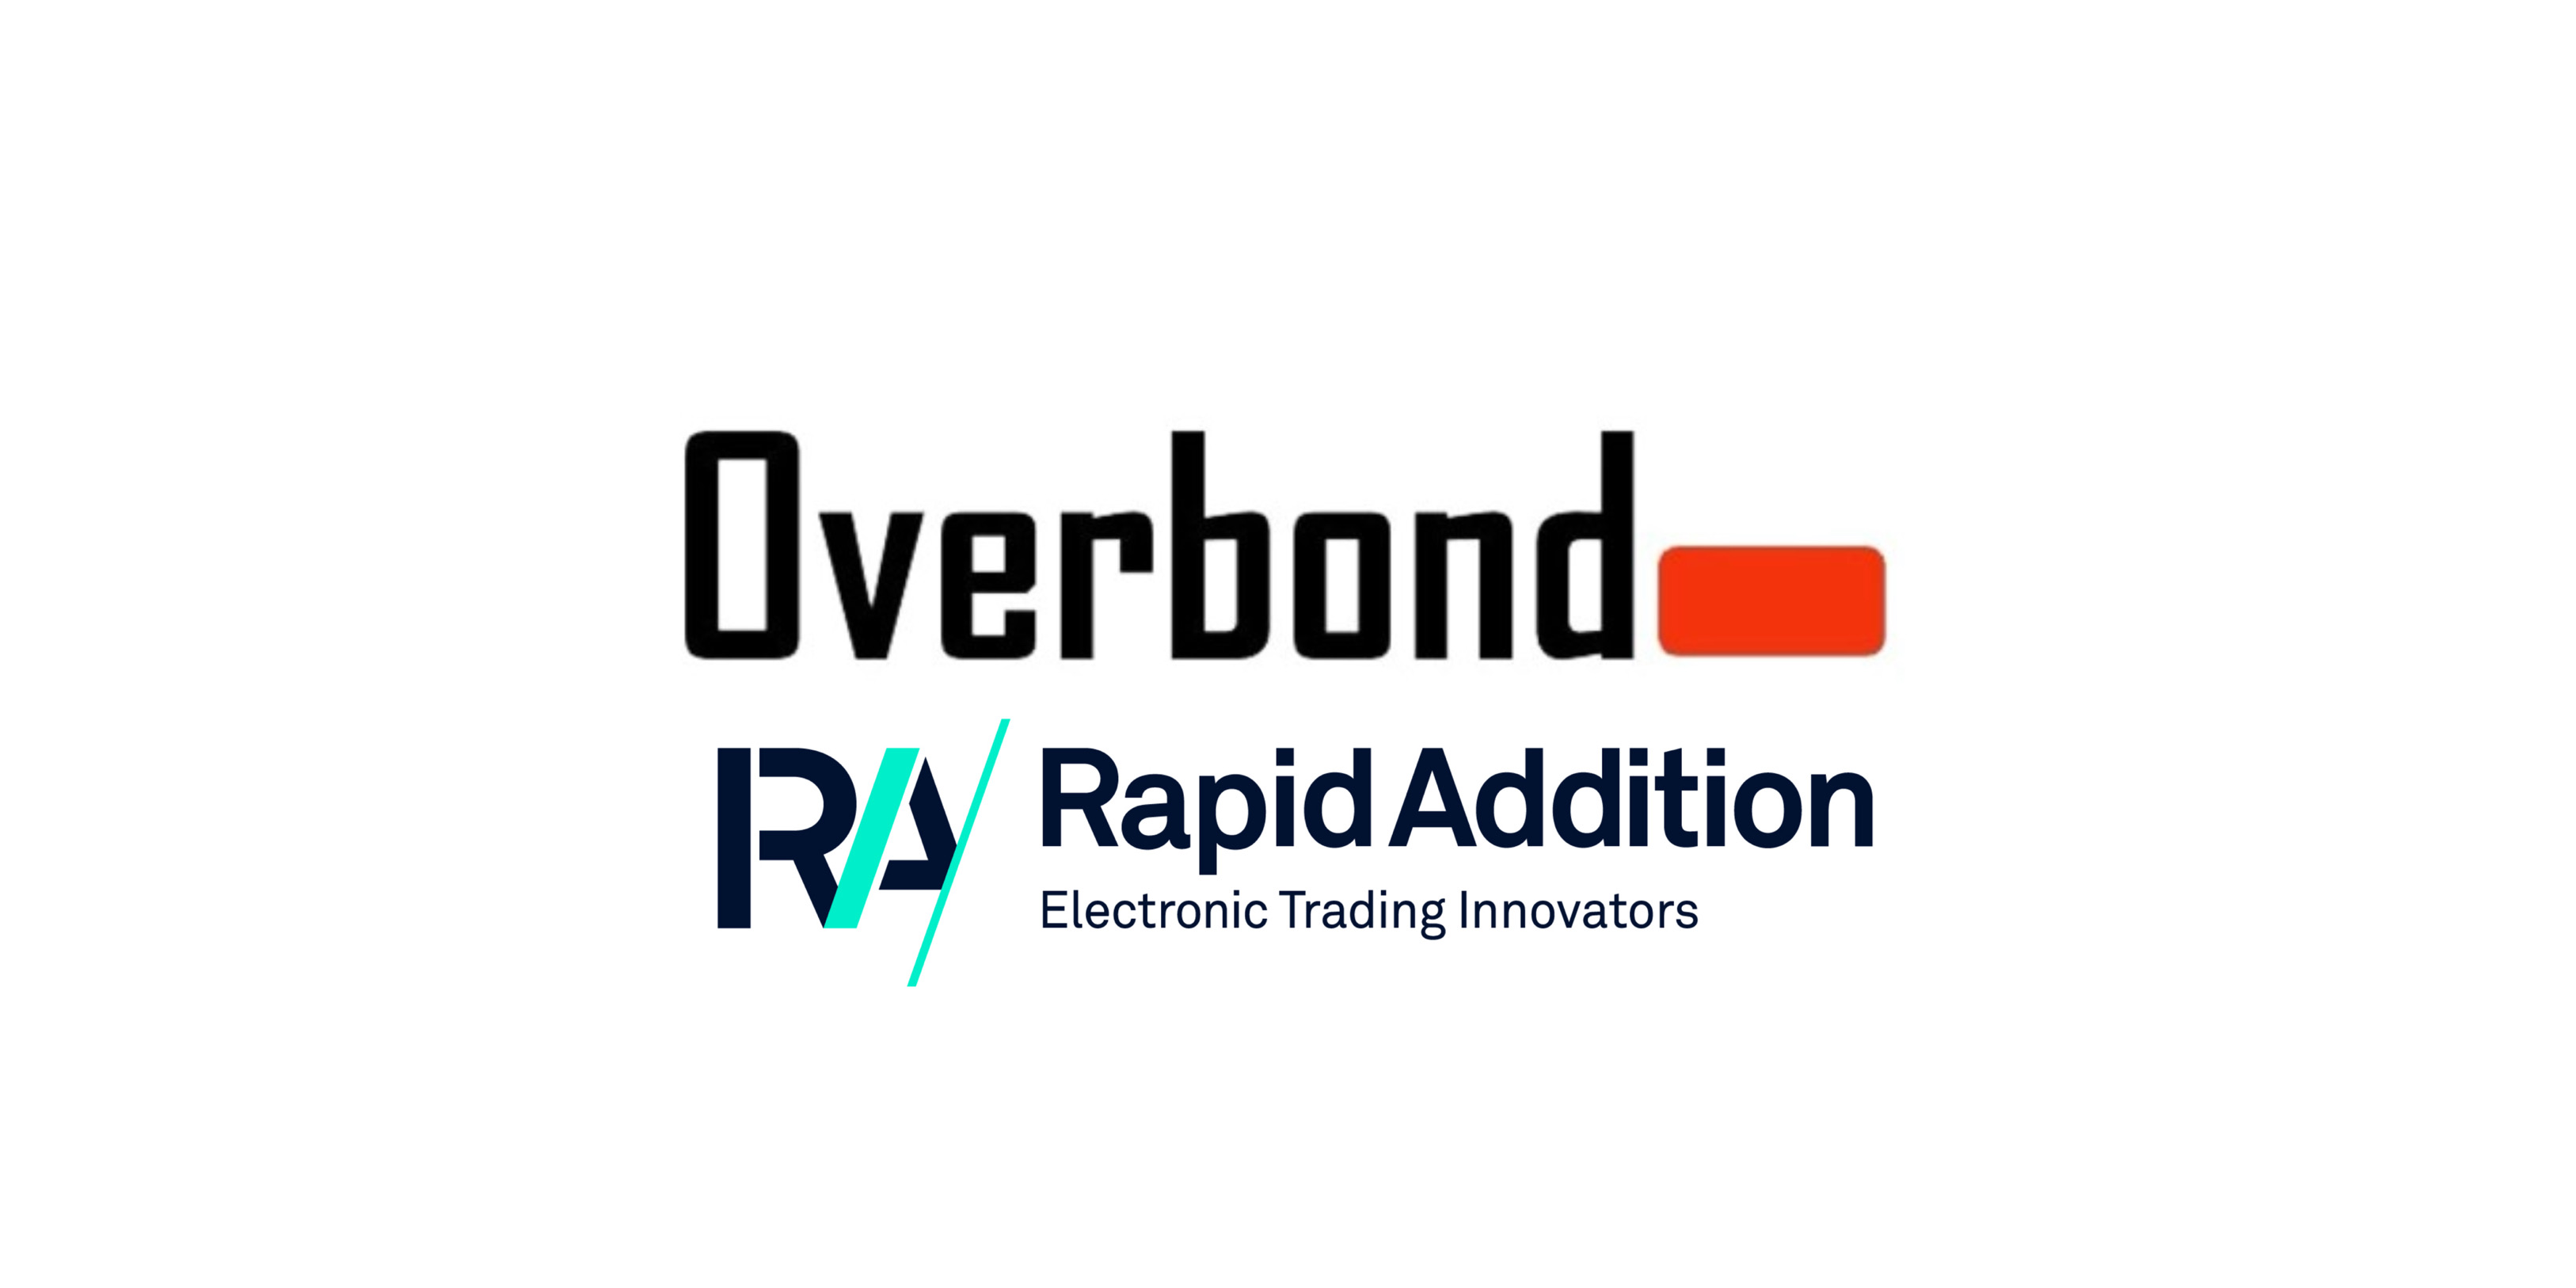 Overbond and Rapid Addition Form Strategic Alliance to Bring Interoperability and Market Connectivity to Bond Trading Automation